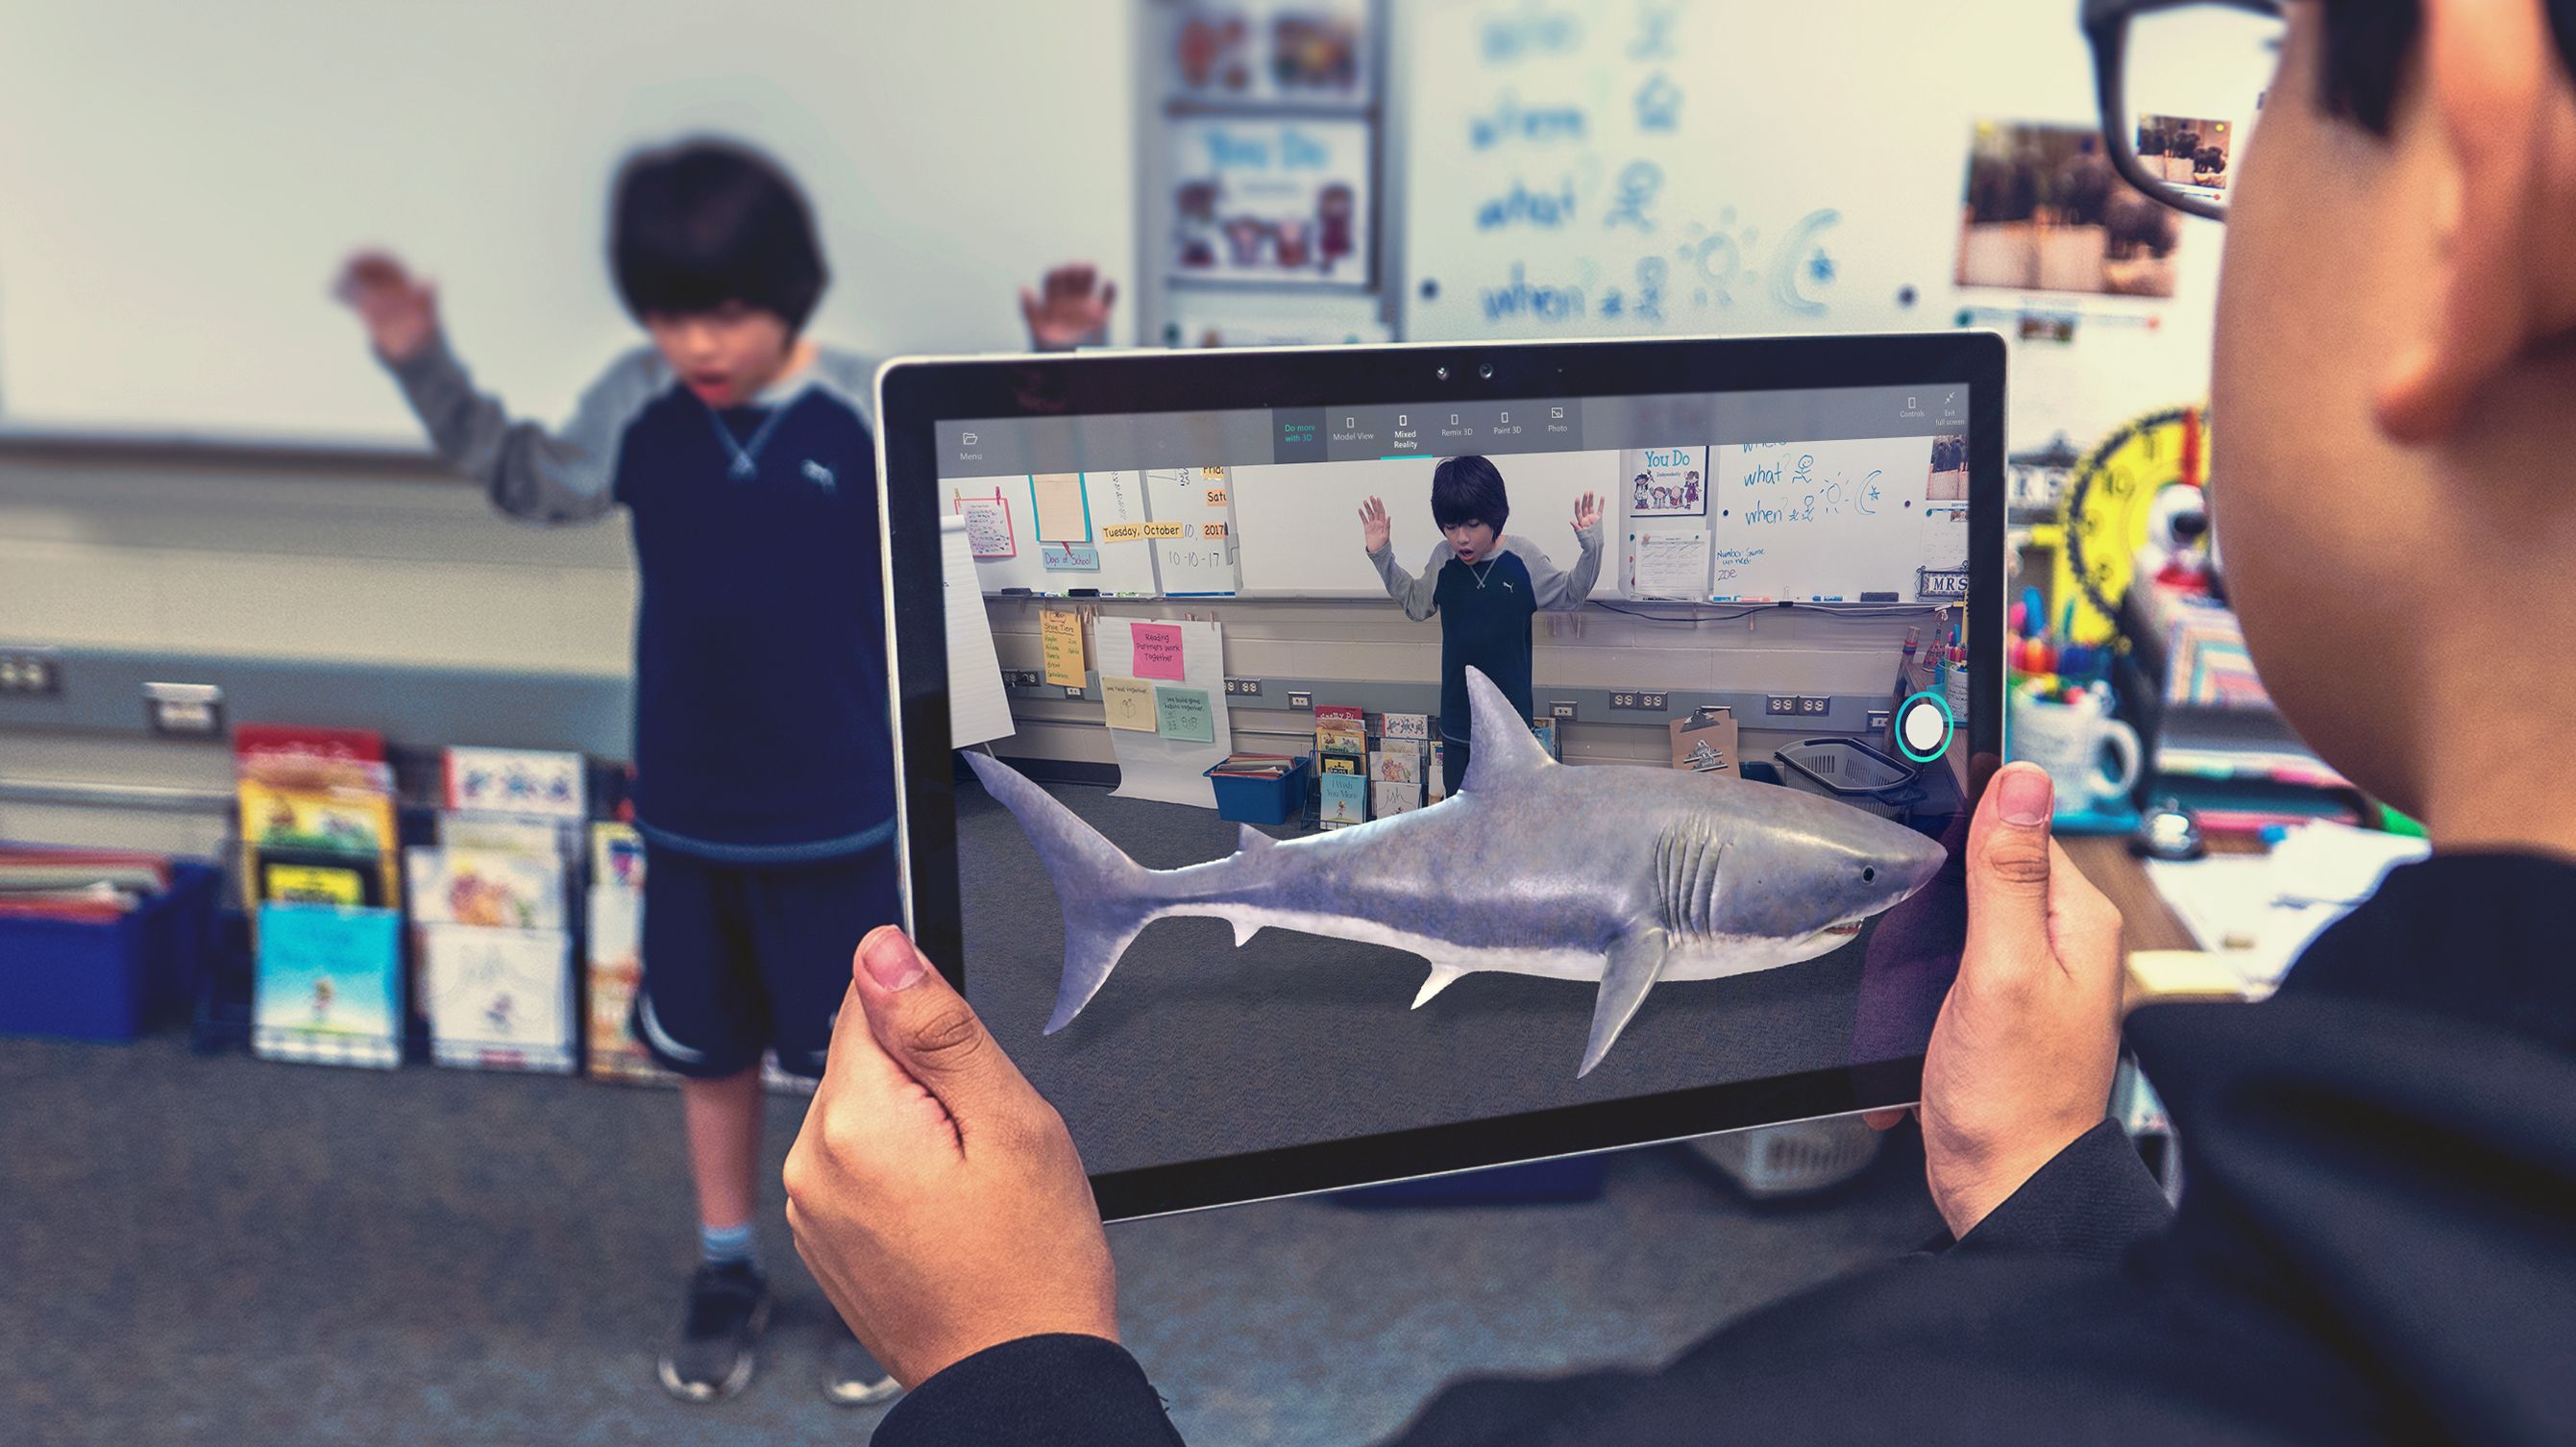 The Mixed Reality Viewer in action. The shark isn't real; it's computer generated.